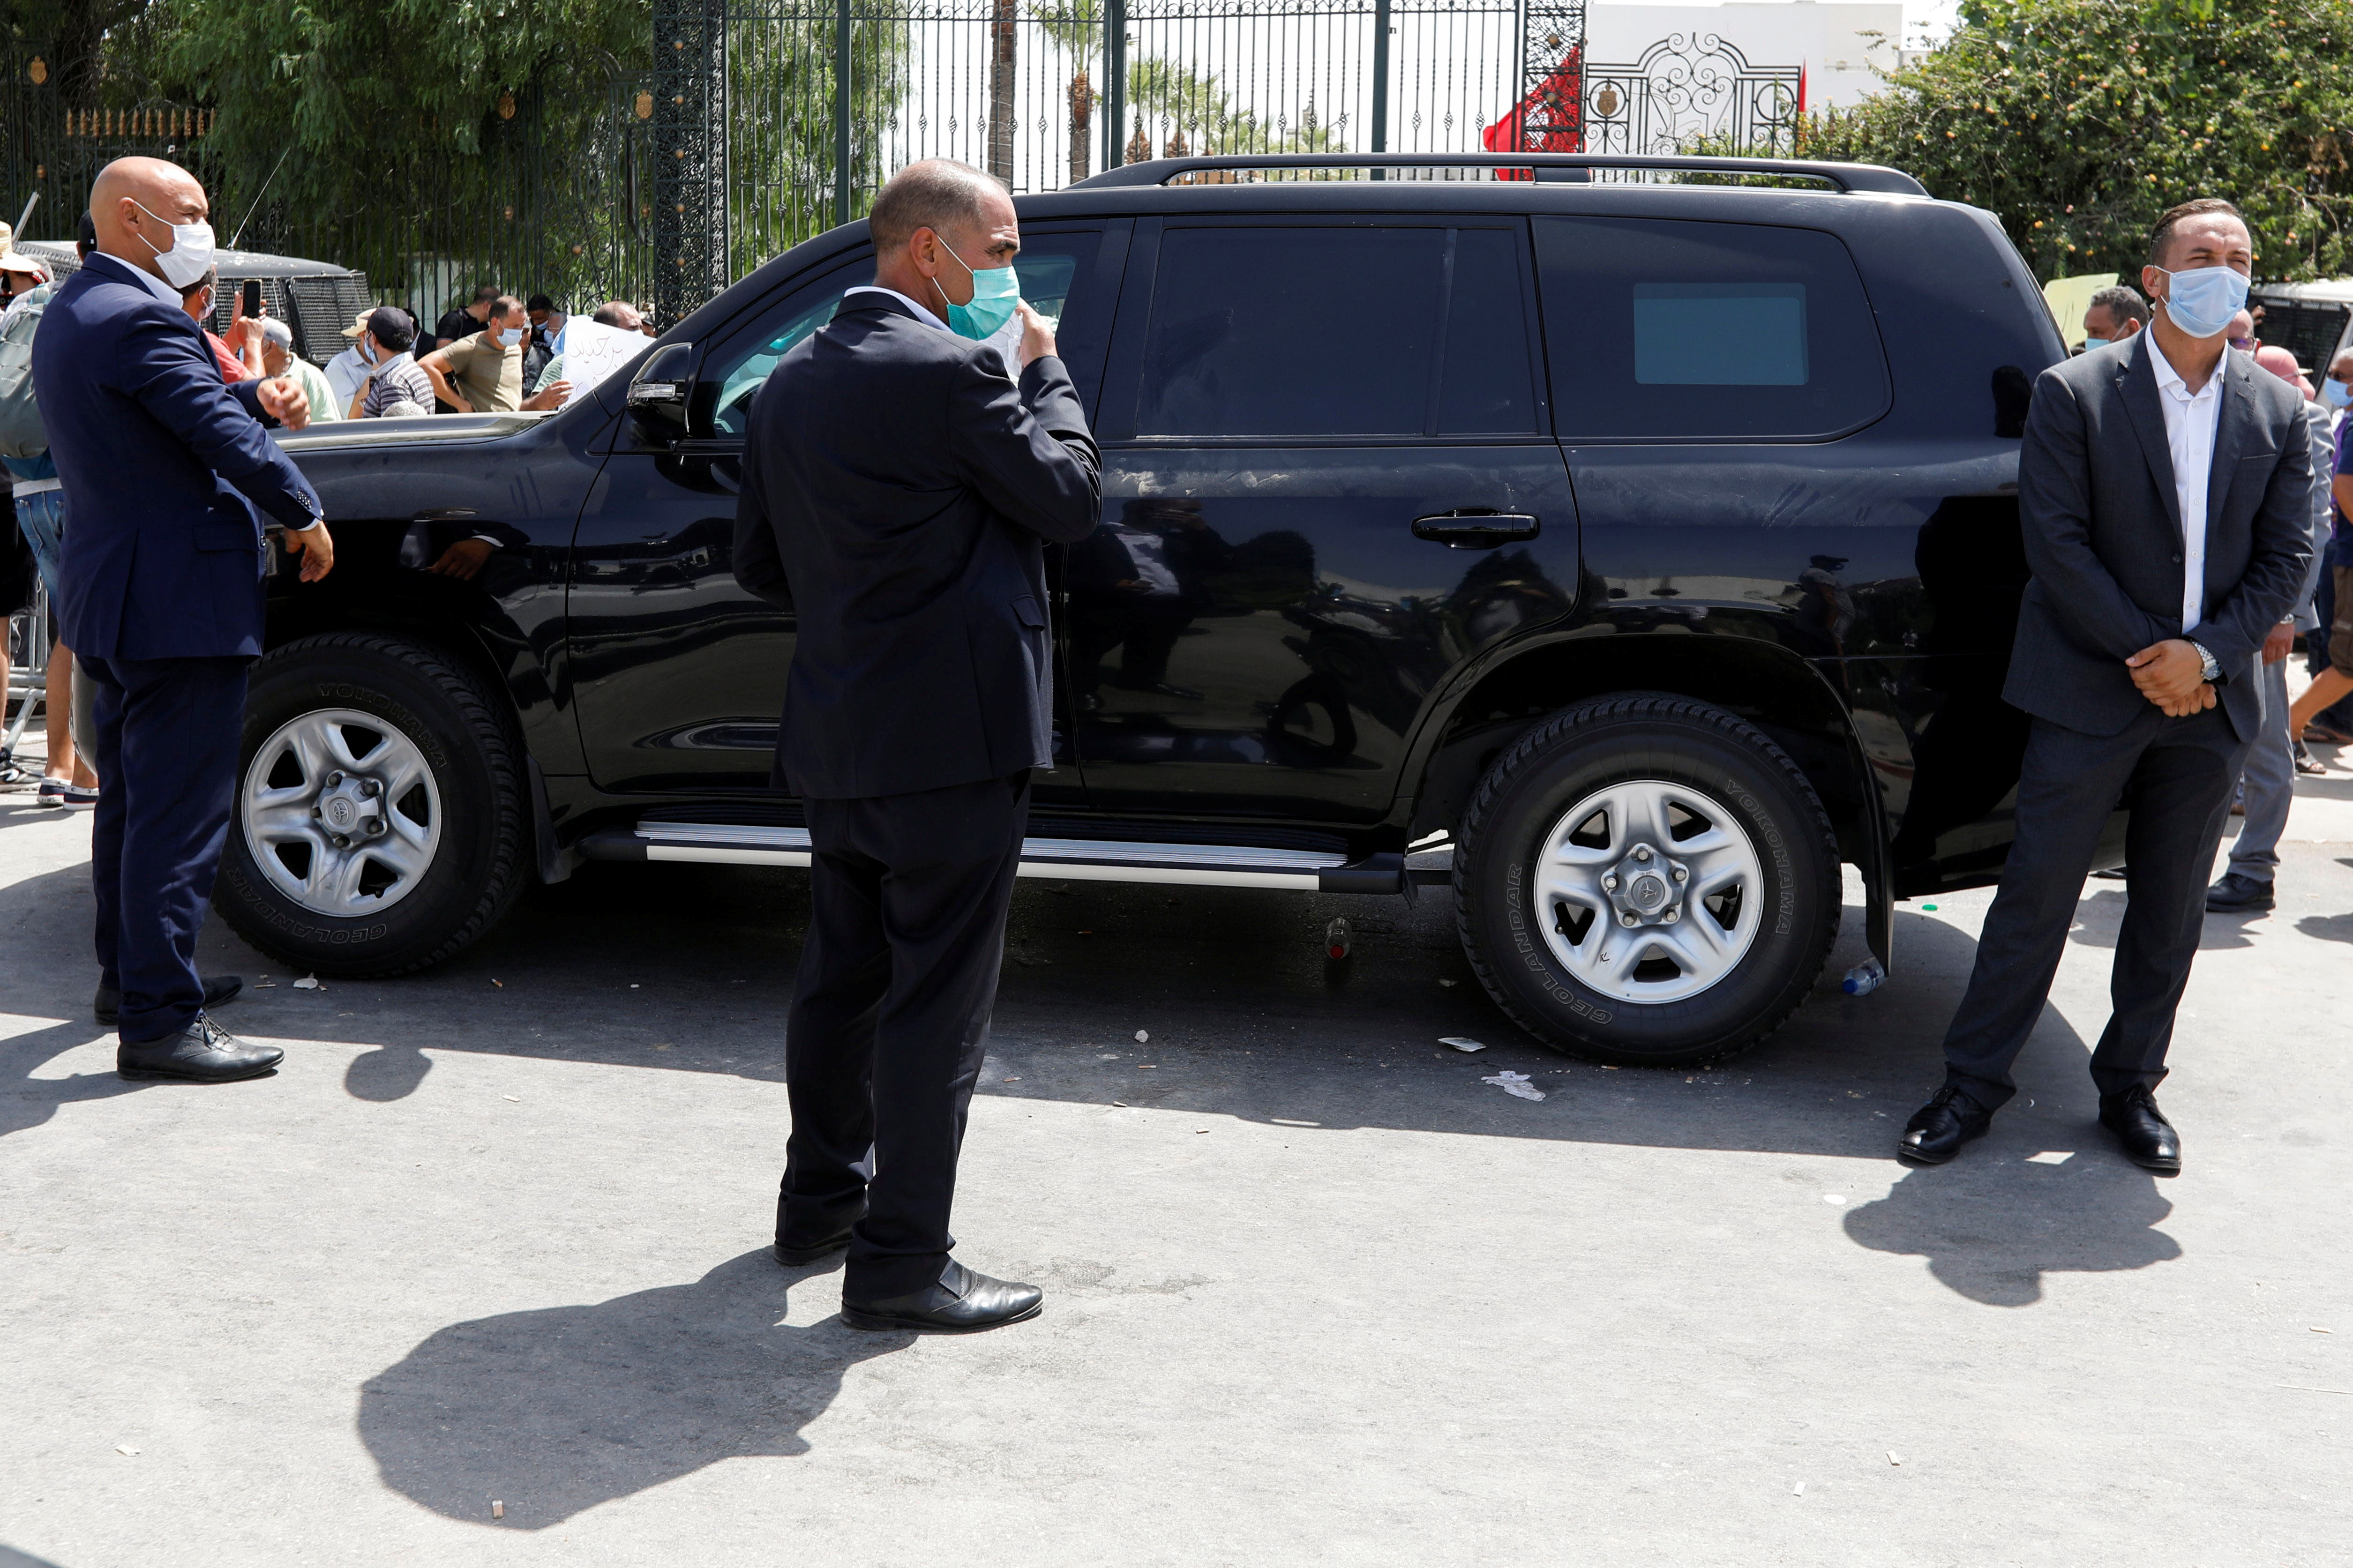 Security personnel keep guard around a vehicle carrying Parliament Speaker Rached Ghannouchi as his supporters gather outside the parliament building in Tunis, Tunisia July 26, 2021. REUTERS/Zoubeir Souissi